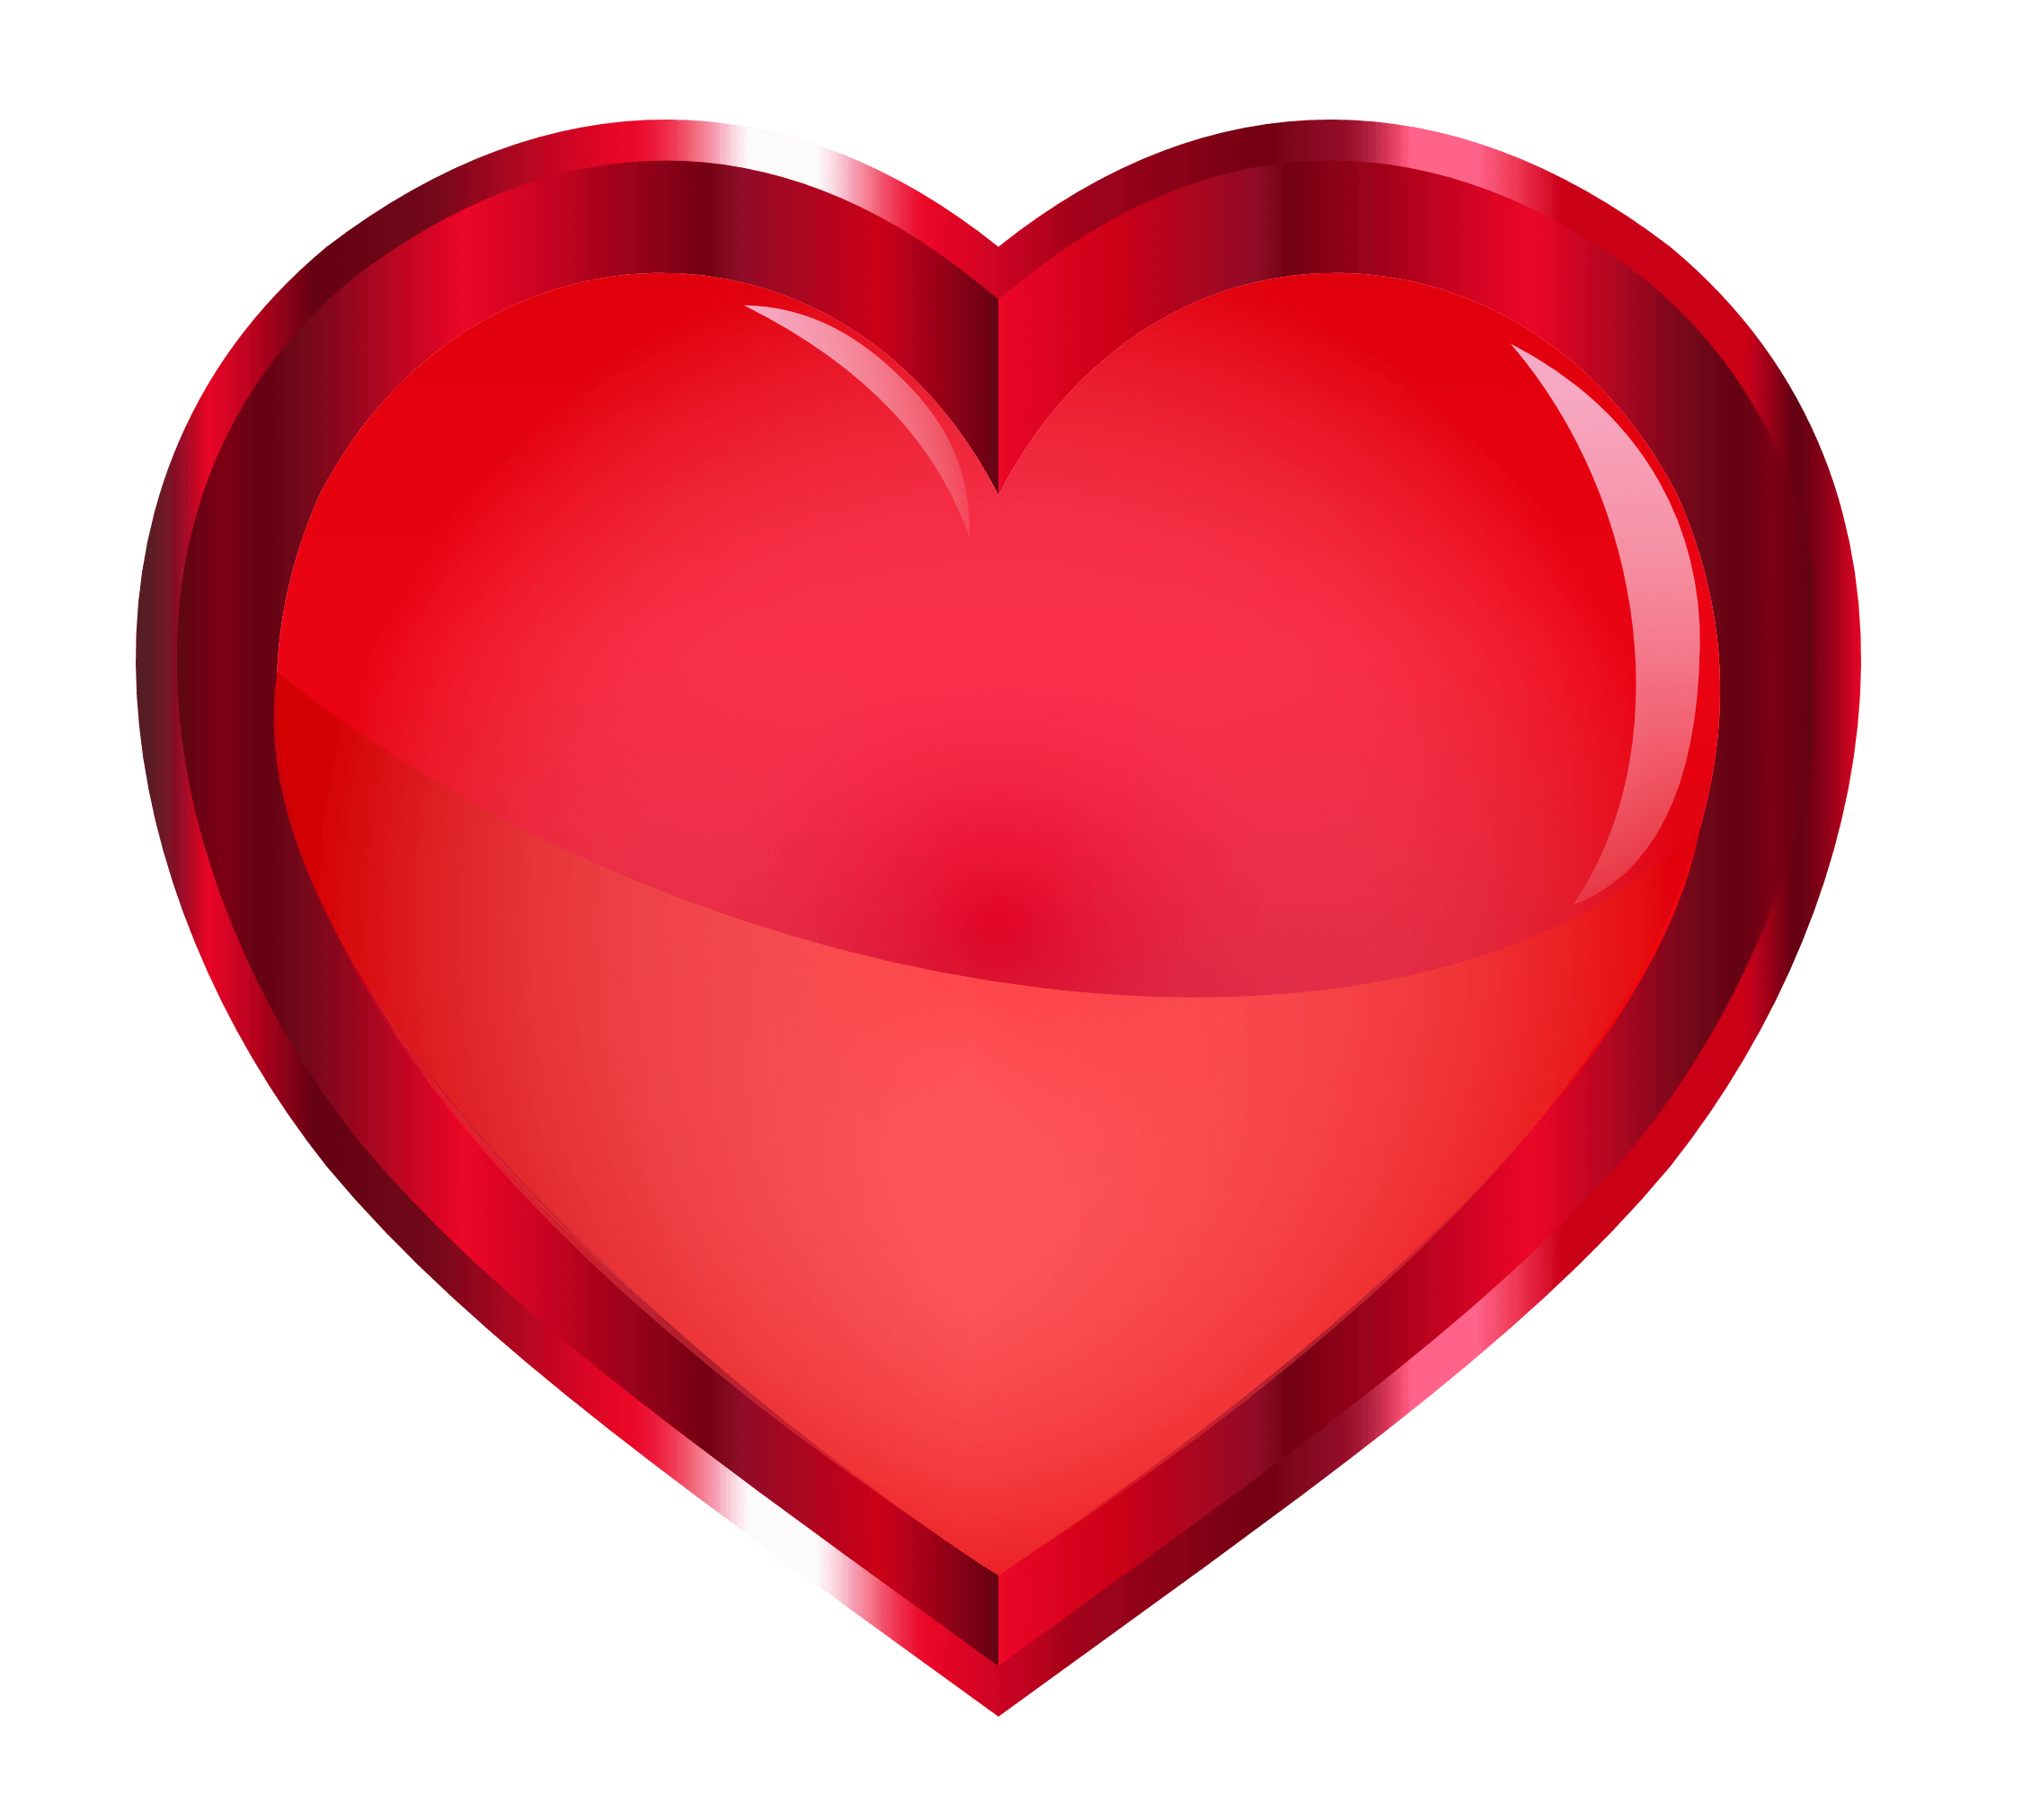 red heart png transparent image